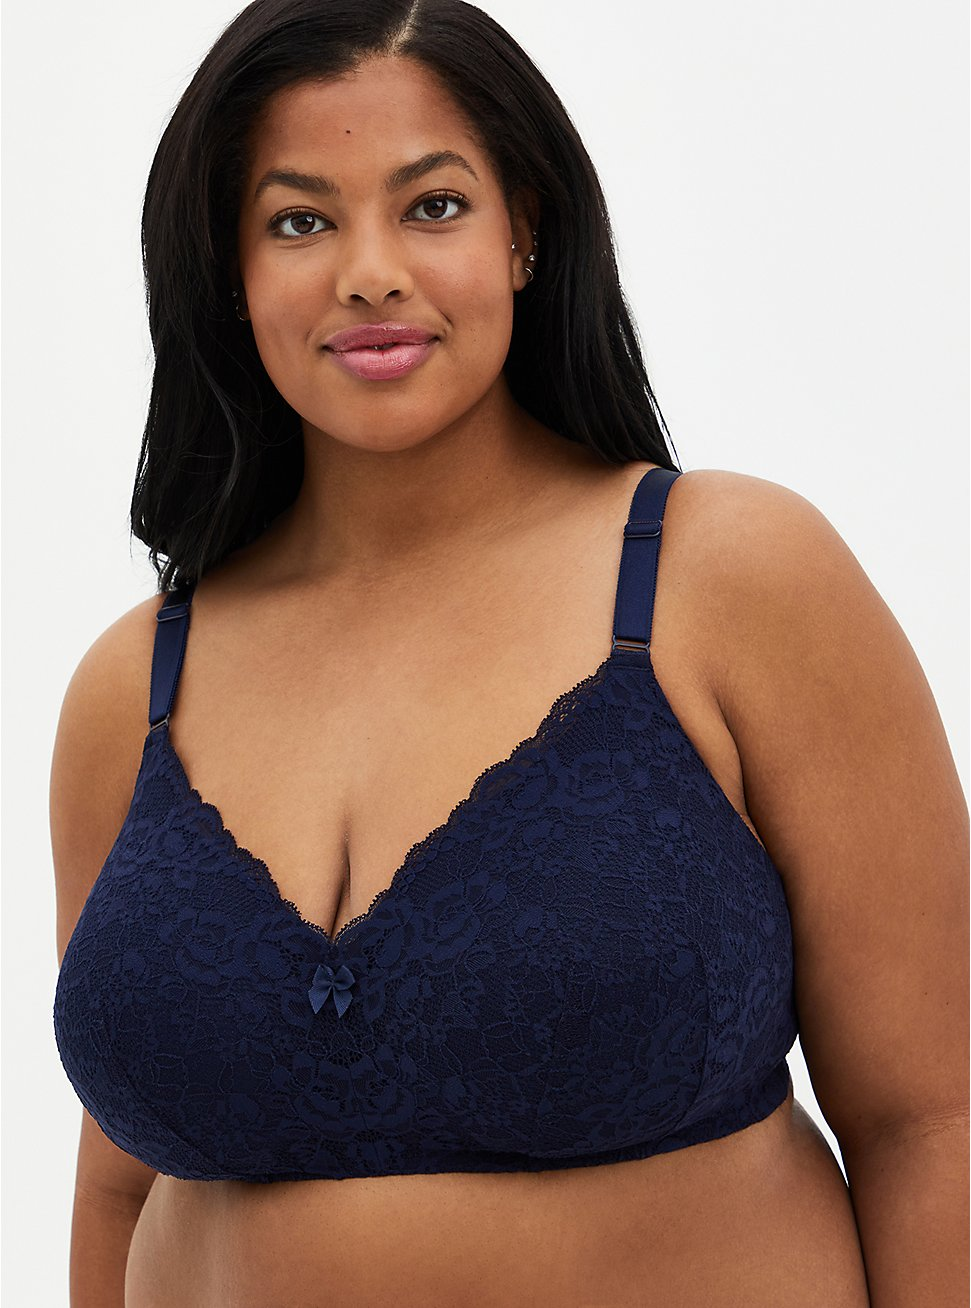 Navy Lace 360° Back Smoothing™ Lightly Lined Everyday Wire-Free Bra, PEACOAT, hi-res